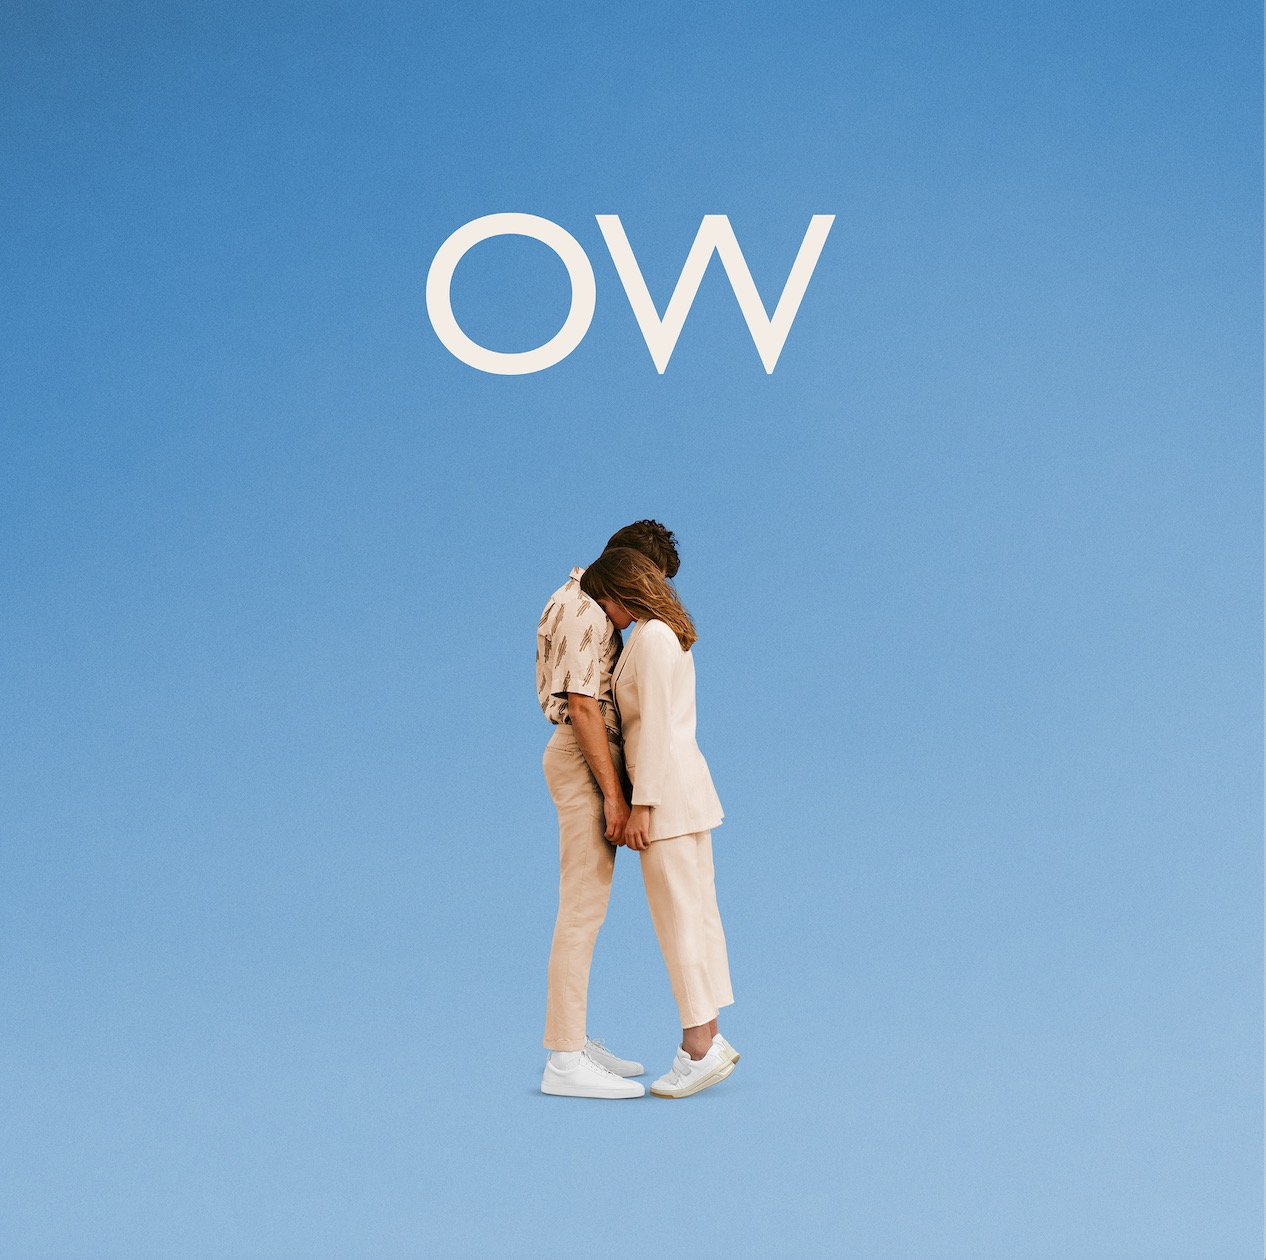 Oh Wonder artwork